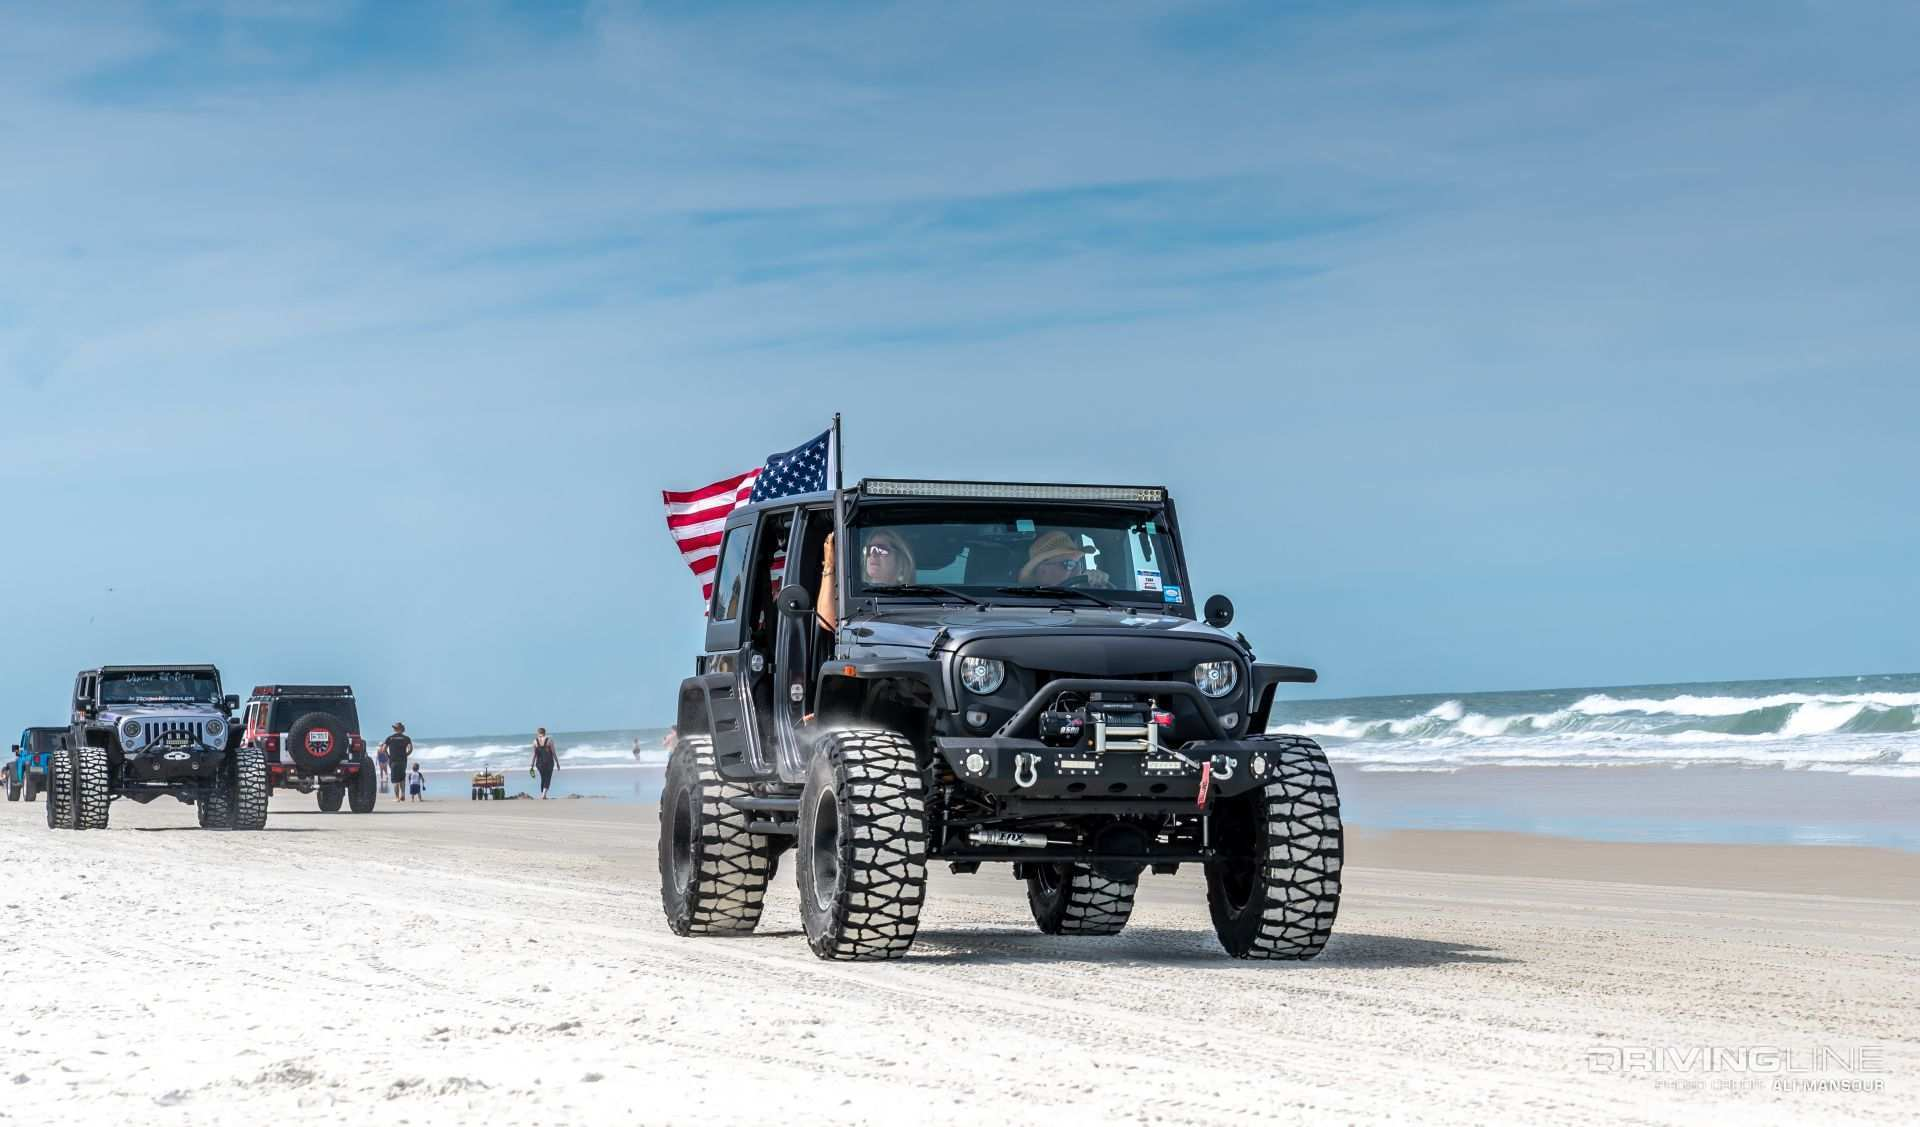 98 All New Jeep Beach Daytona 2020 Redesign